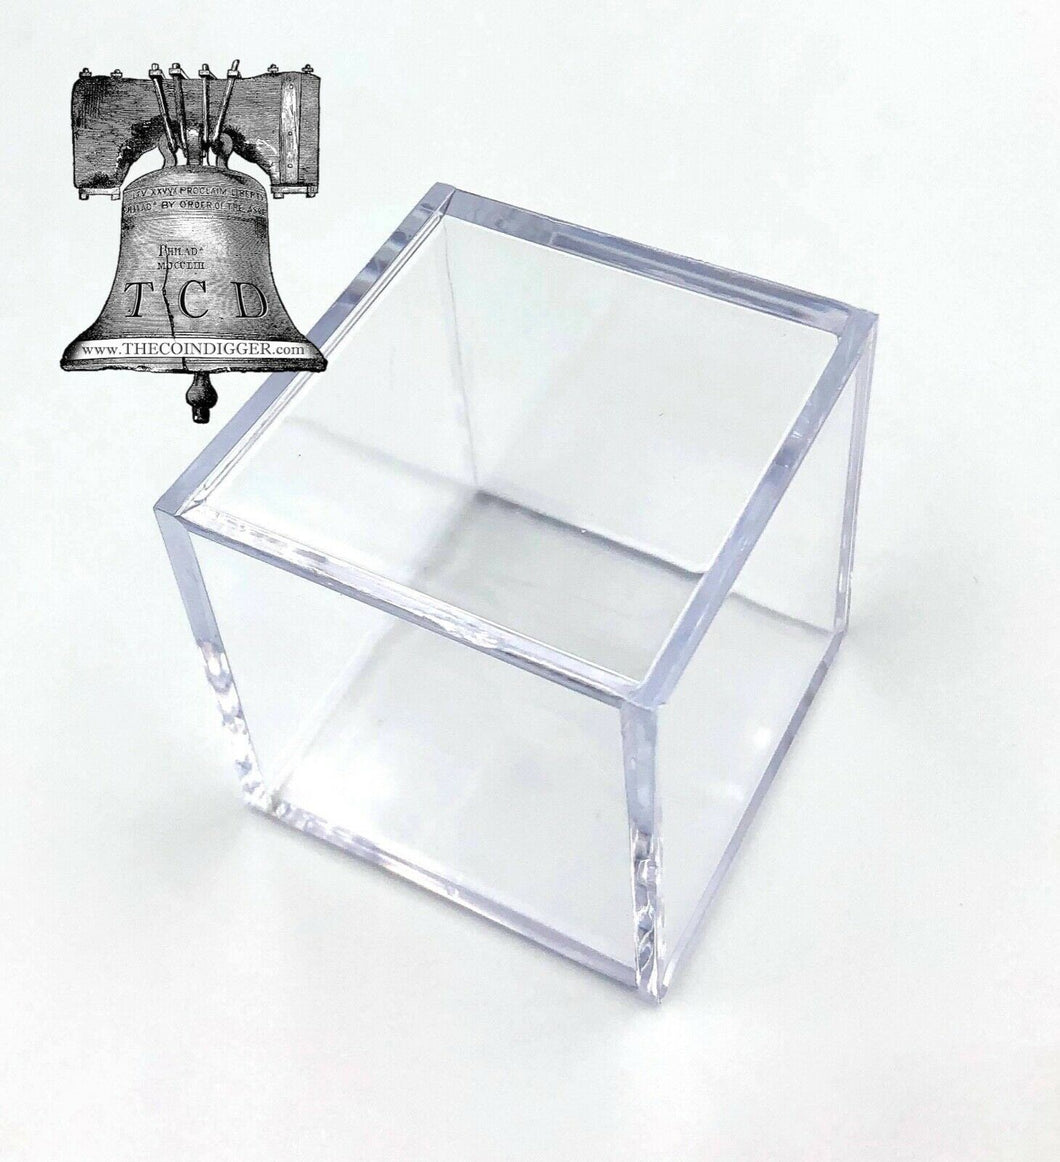 1 Golf Ball Holder Display Square Case BCW 2x2x2 Stackable Cube Stand Protector